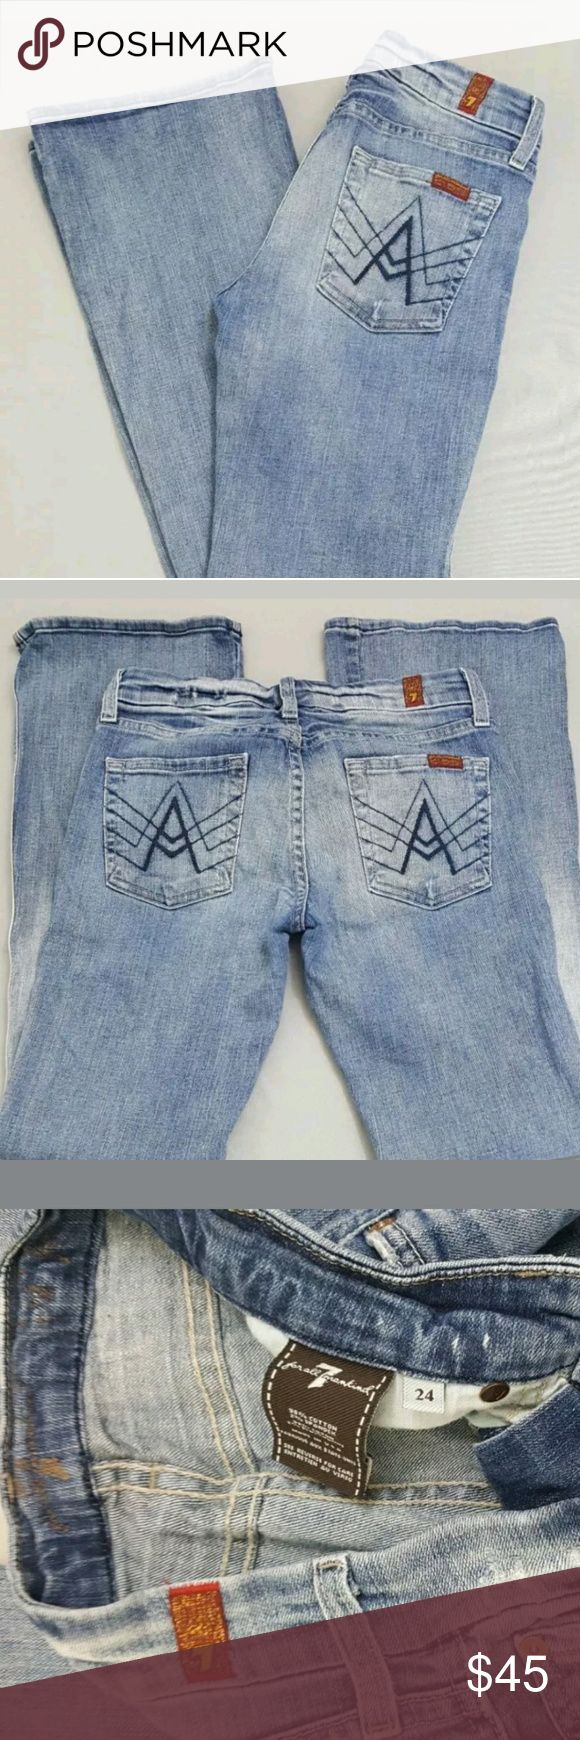 28 Best Jeans Images On Pinterest Nyx Lips Smacking Fun Color Lss 7fam A Pocket 24